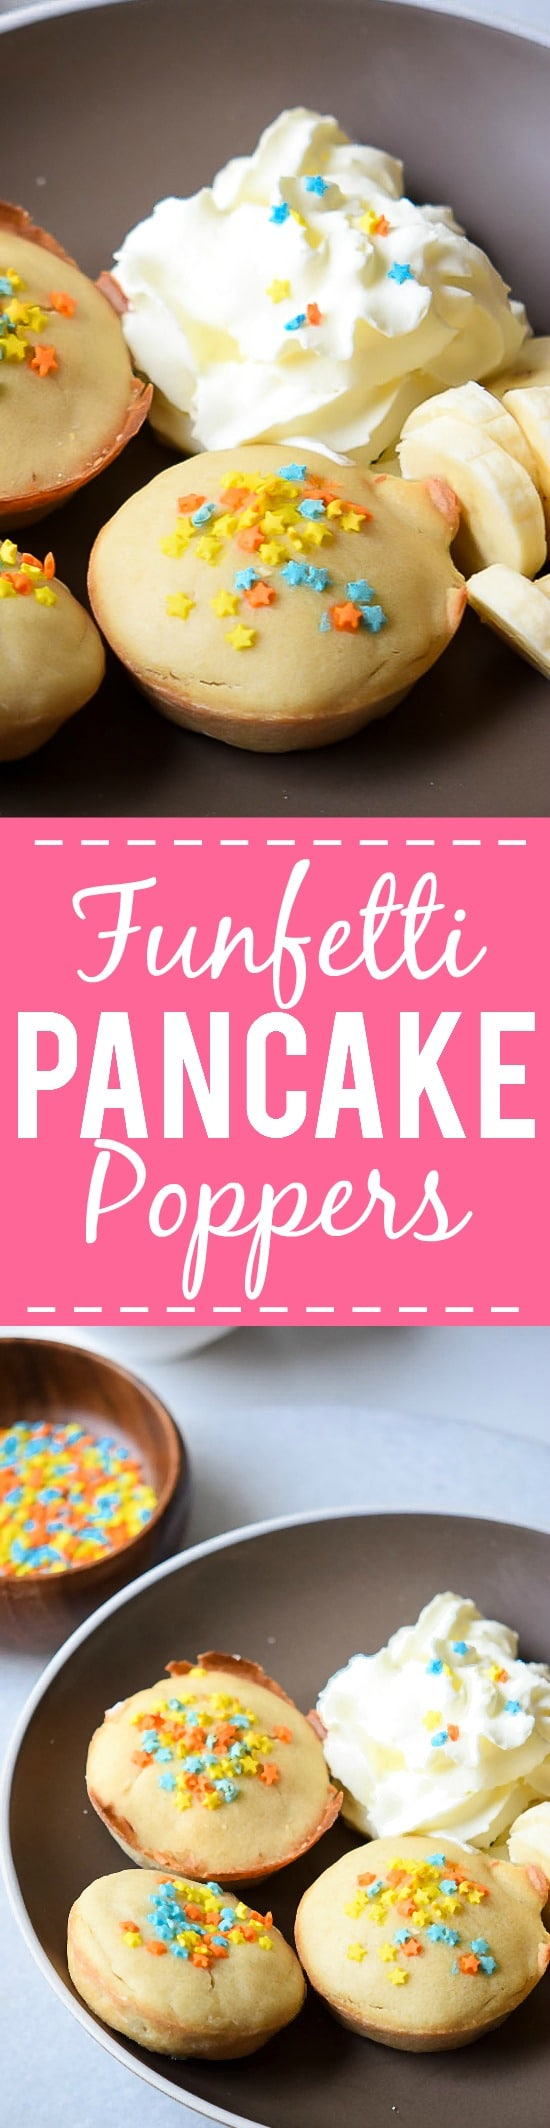 Funfetti Pancake Poppers recipe - These fun Funfetti Pancakes Poppers are a super easy breakfast recipe that the kids will love.  Perfect for even week day mornings or on the go! Yummy and easy breakfast recipe perfect for kids!